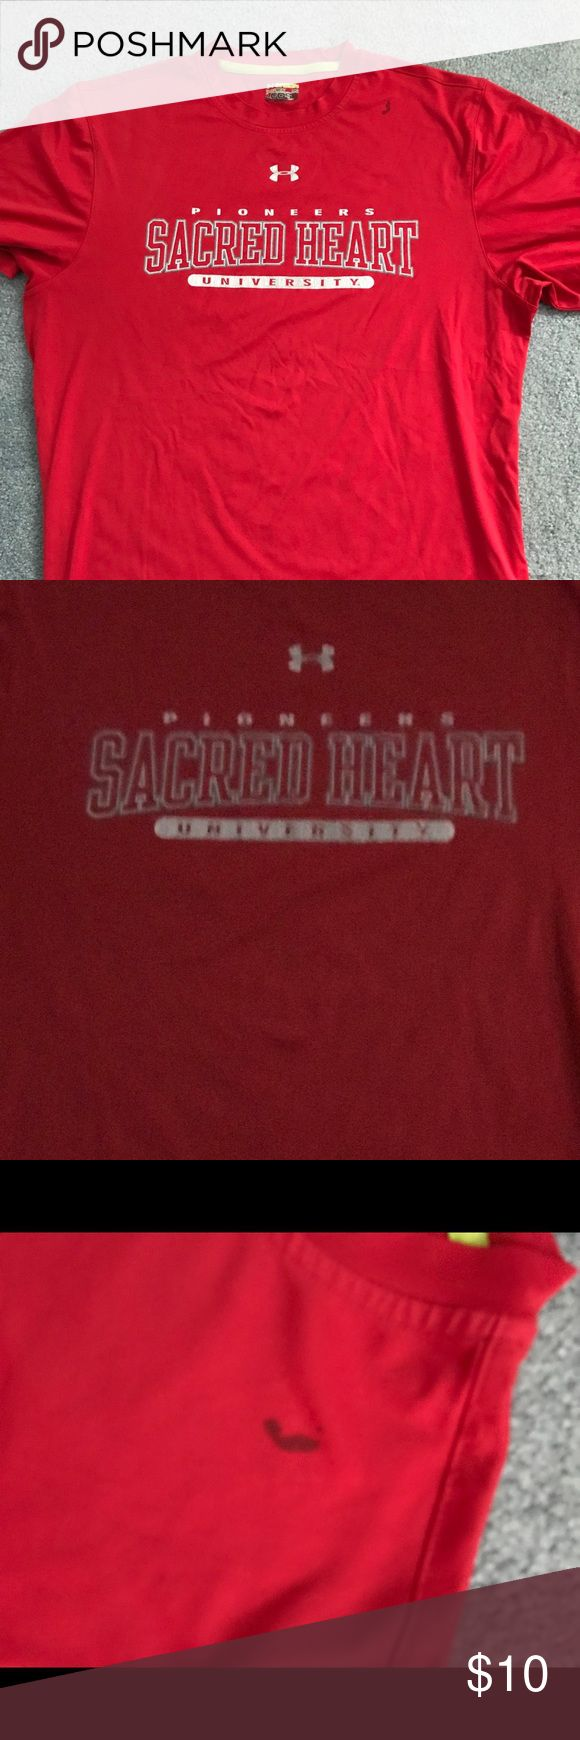 Sacred Heart University dryfit t shirt Under Armour Red college game day athletic T-shirt... small mark shown in photo Under Armour Shirts Tees - Short Sleeve